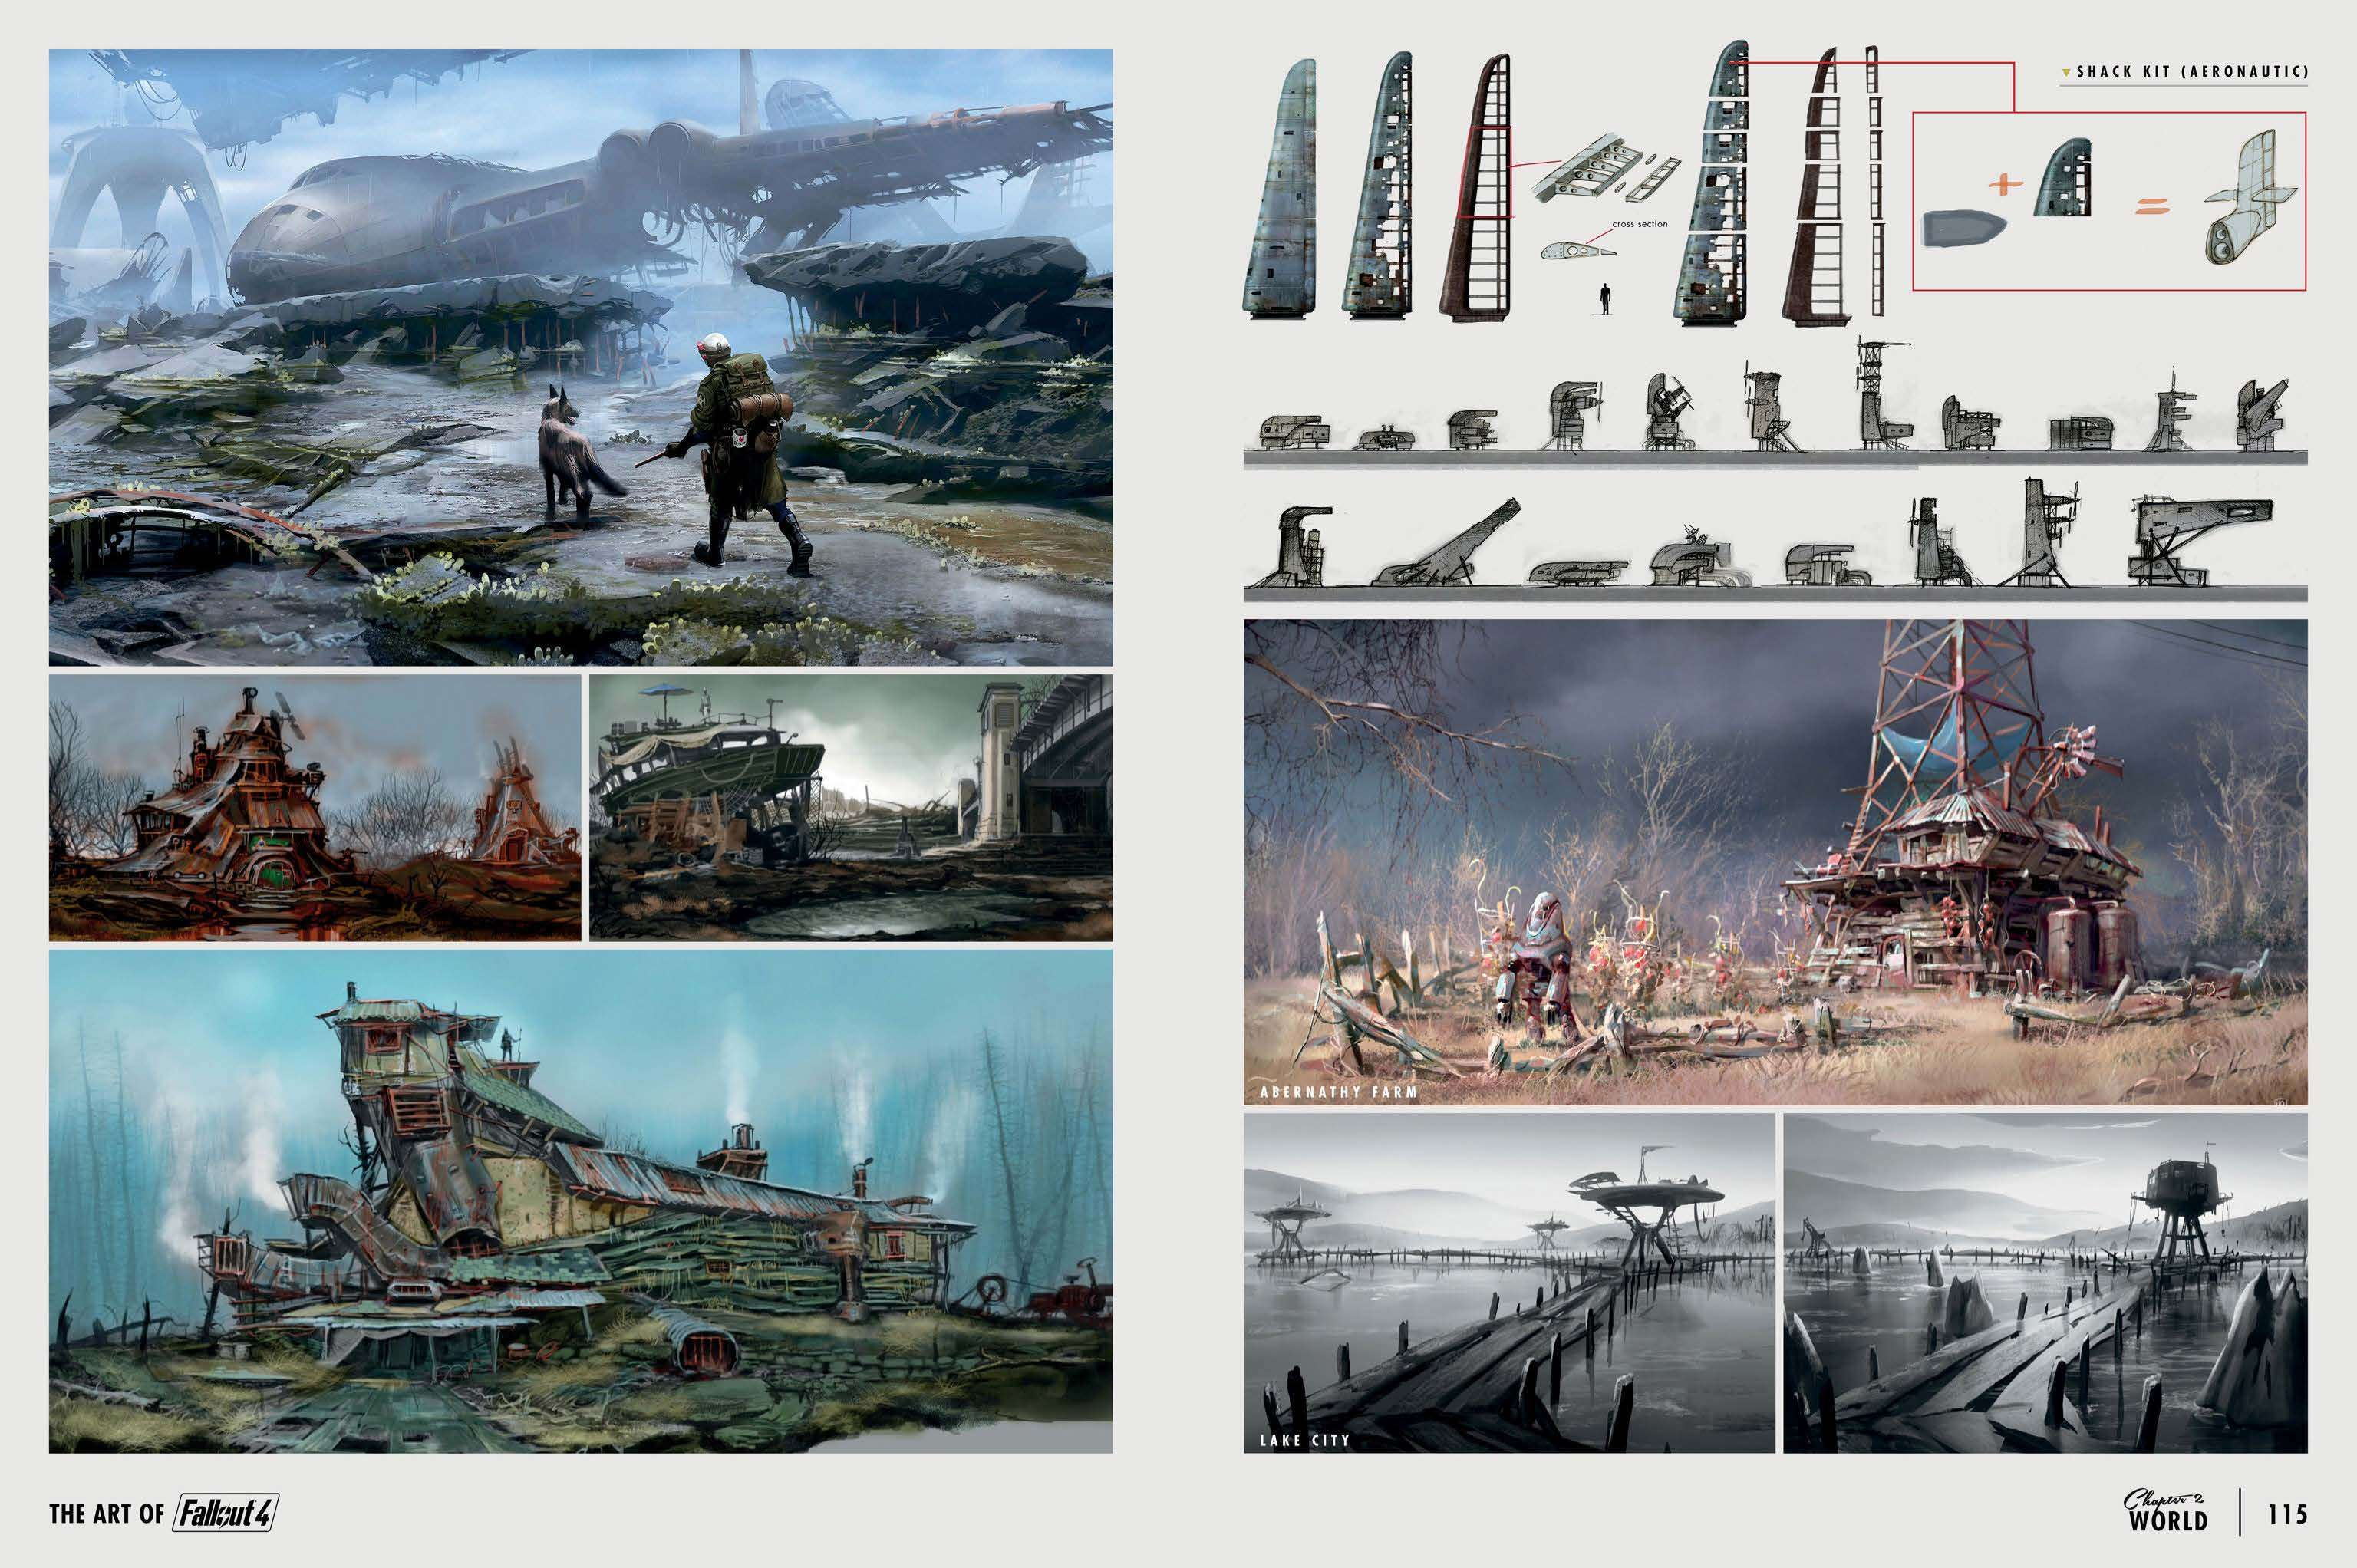 The Art of Fallout 4 - # 058 - Fallout 4 Art, ArtBook, Arts, арт, арты